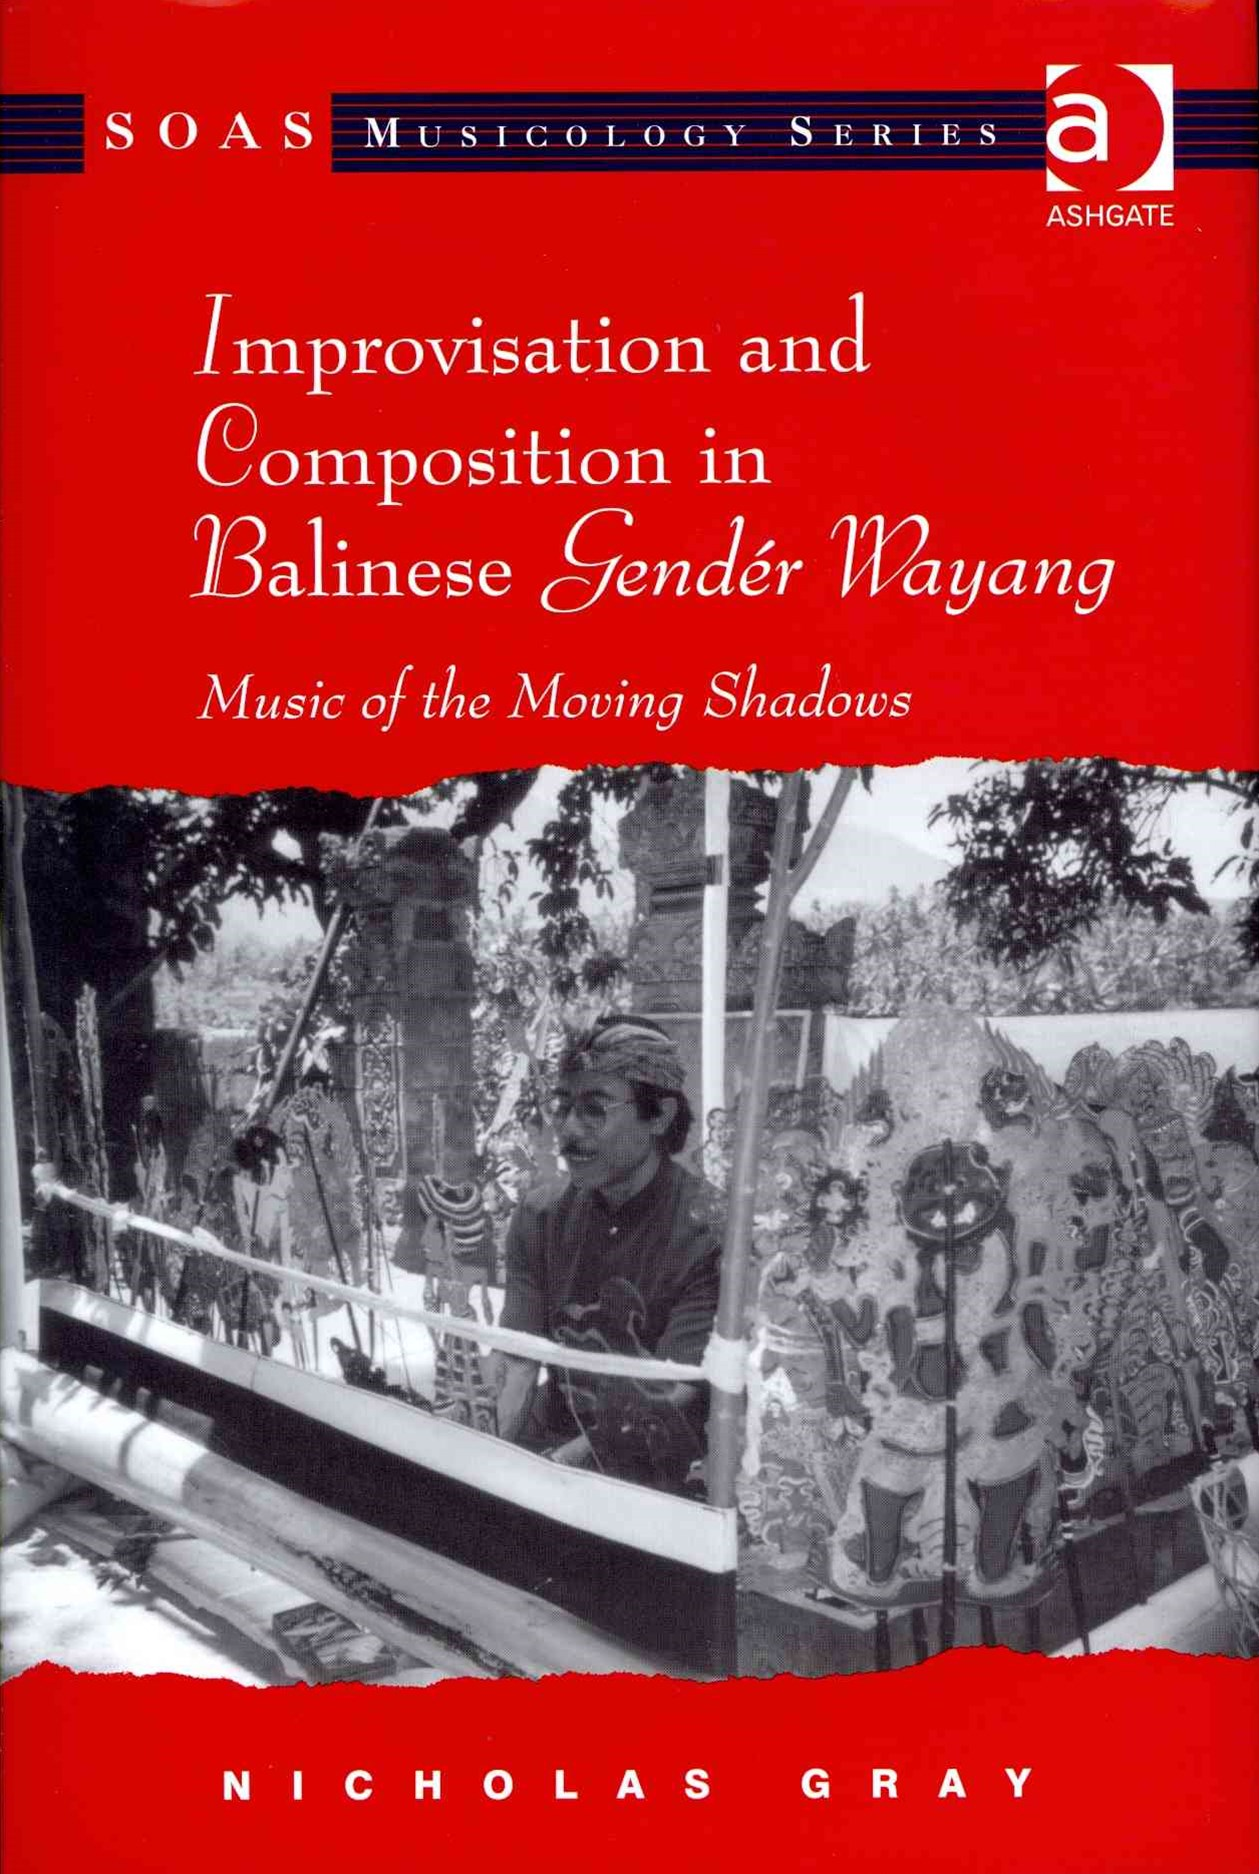 Improvisation and Composition in Balinese Gender Wayang